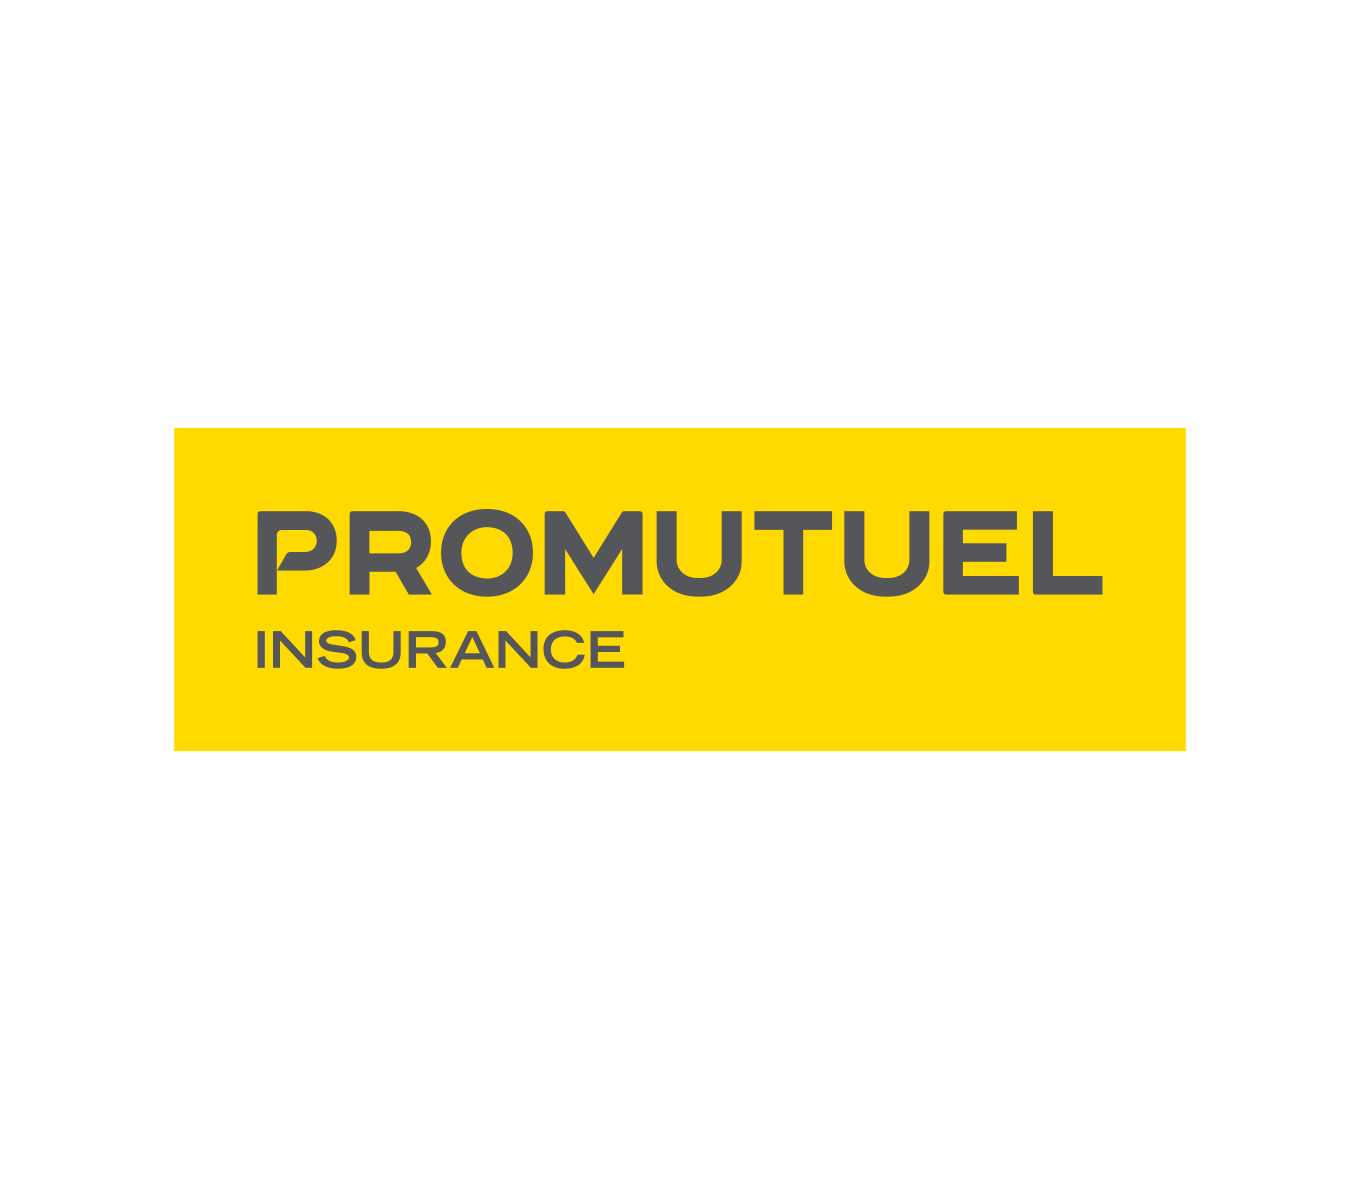 Promutuel Customer Logo